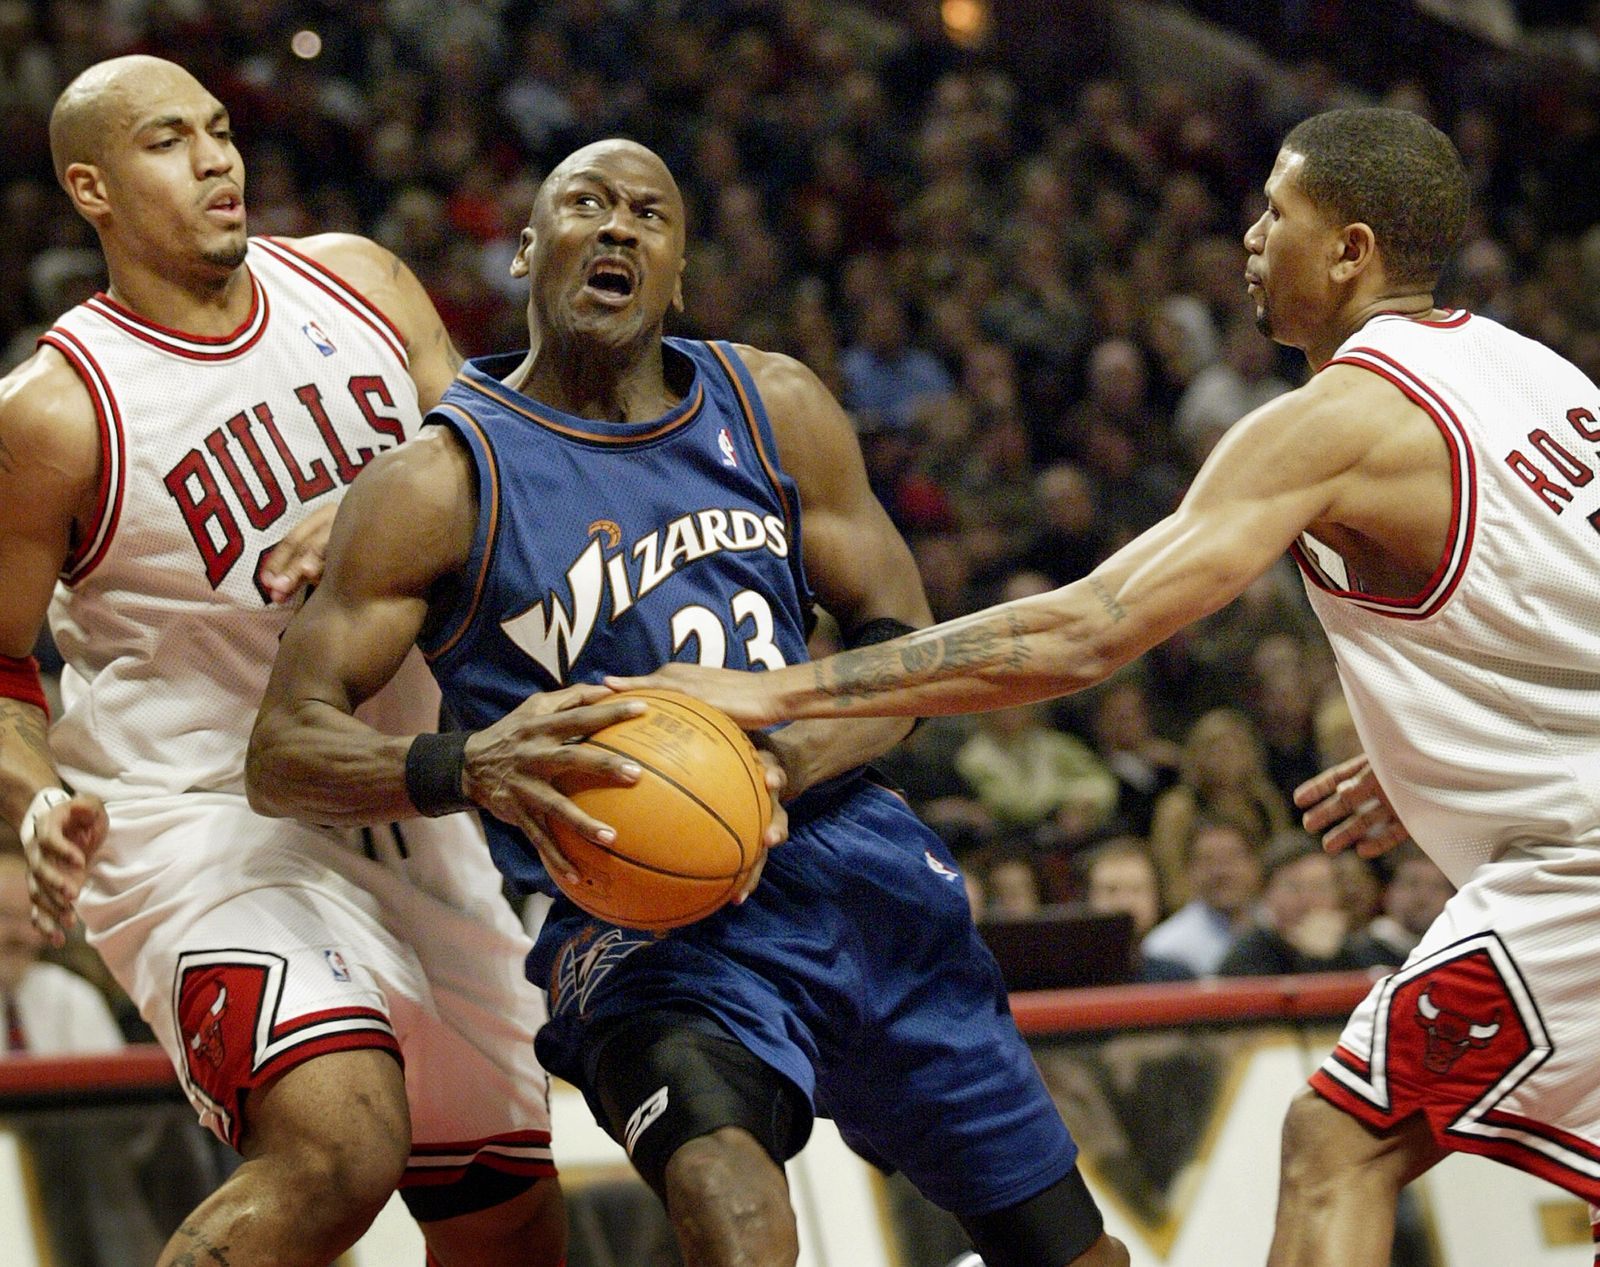 WIZARDS MICHAEL JORDAN GETS STRIPPED OF BALL WHILE GOING FOR A SHOT.